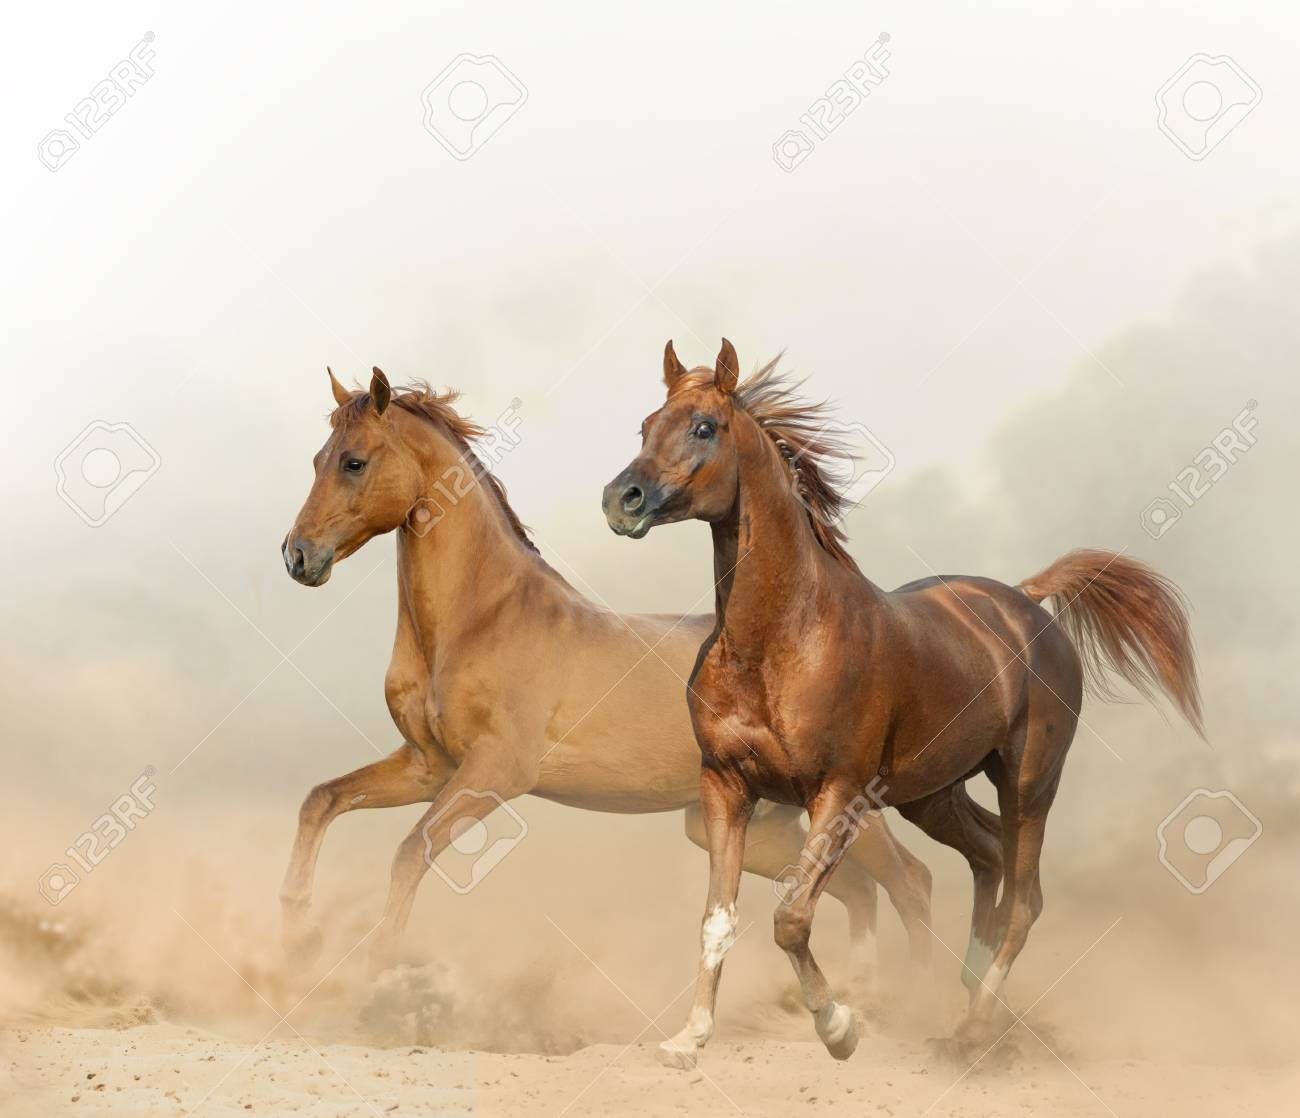 Two Chestnut Horses Running On A Wild In Desert Stock Photo Picture And Royalty Free Image Image 118784811